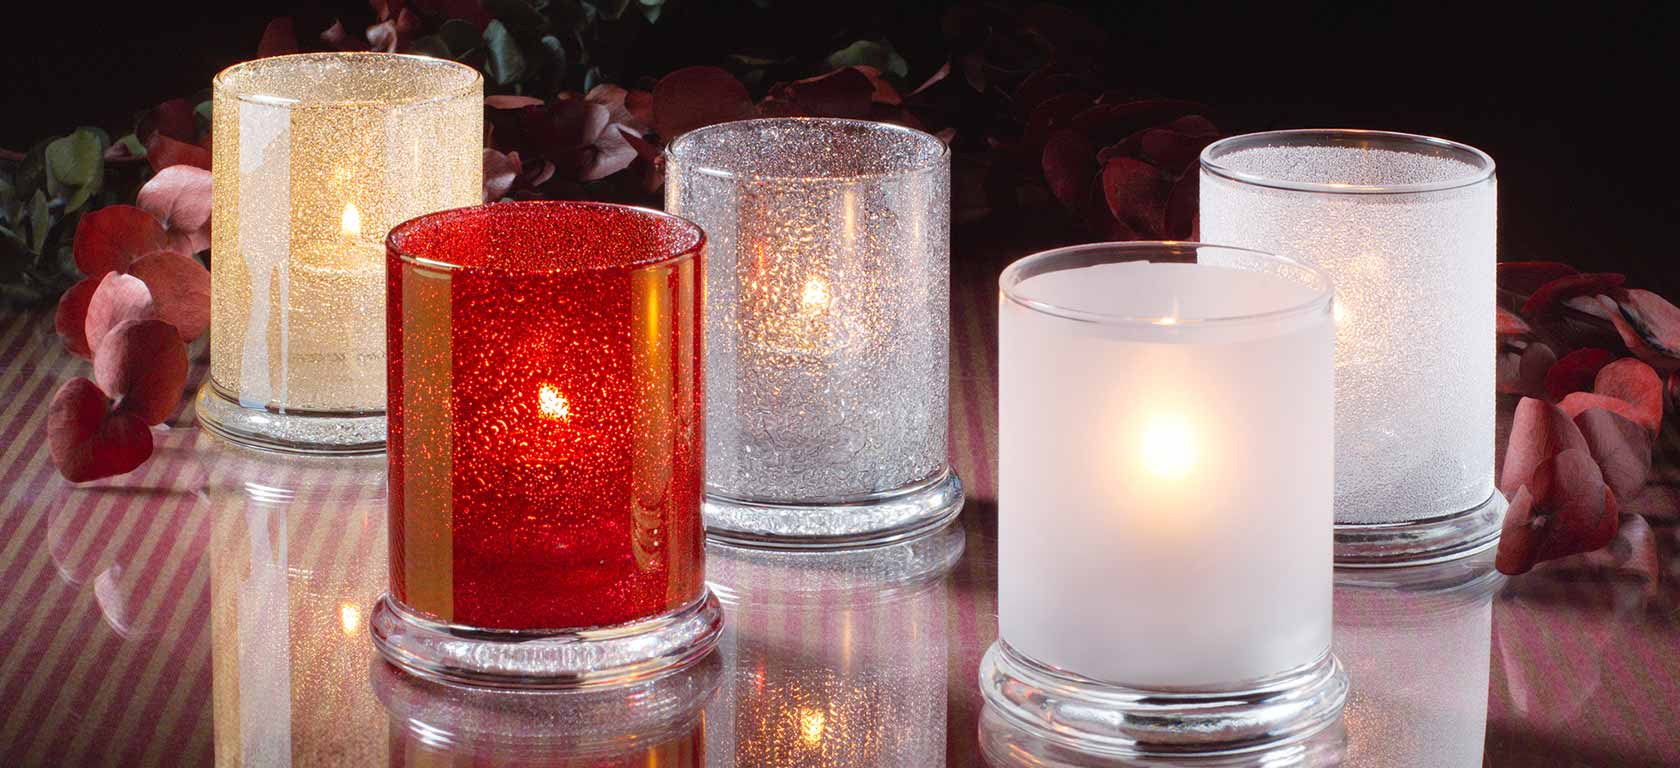 Frosted glass candle holders containing homely burning candles.